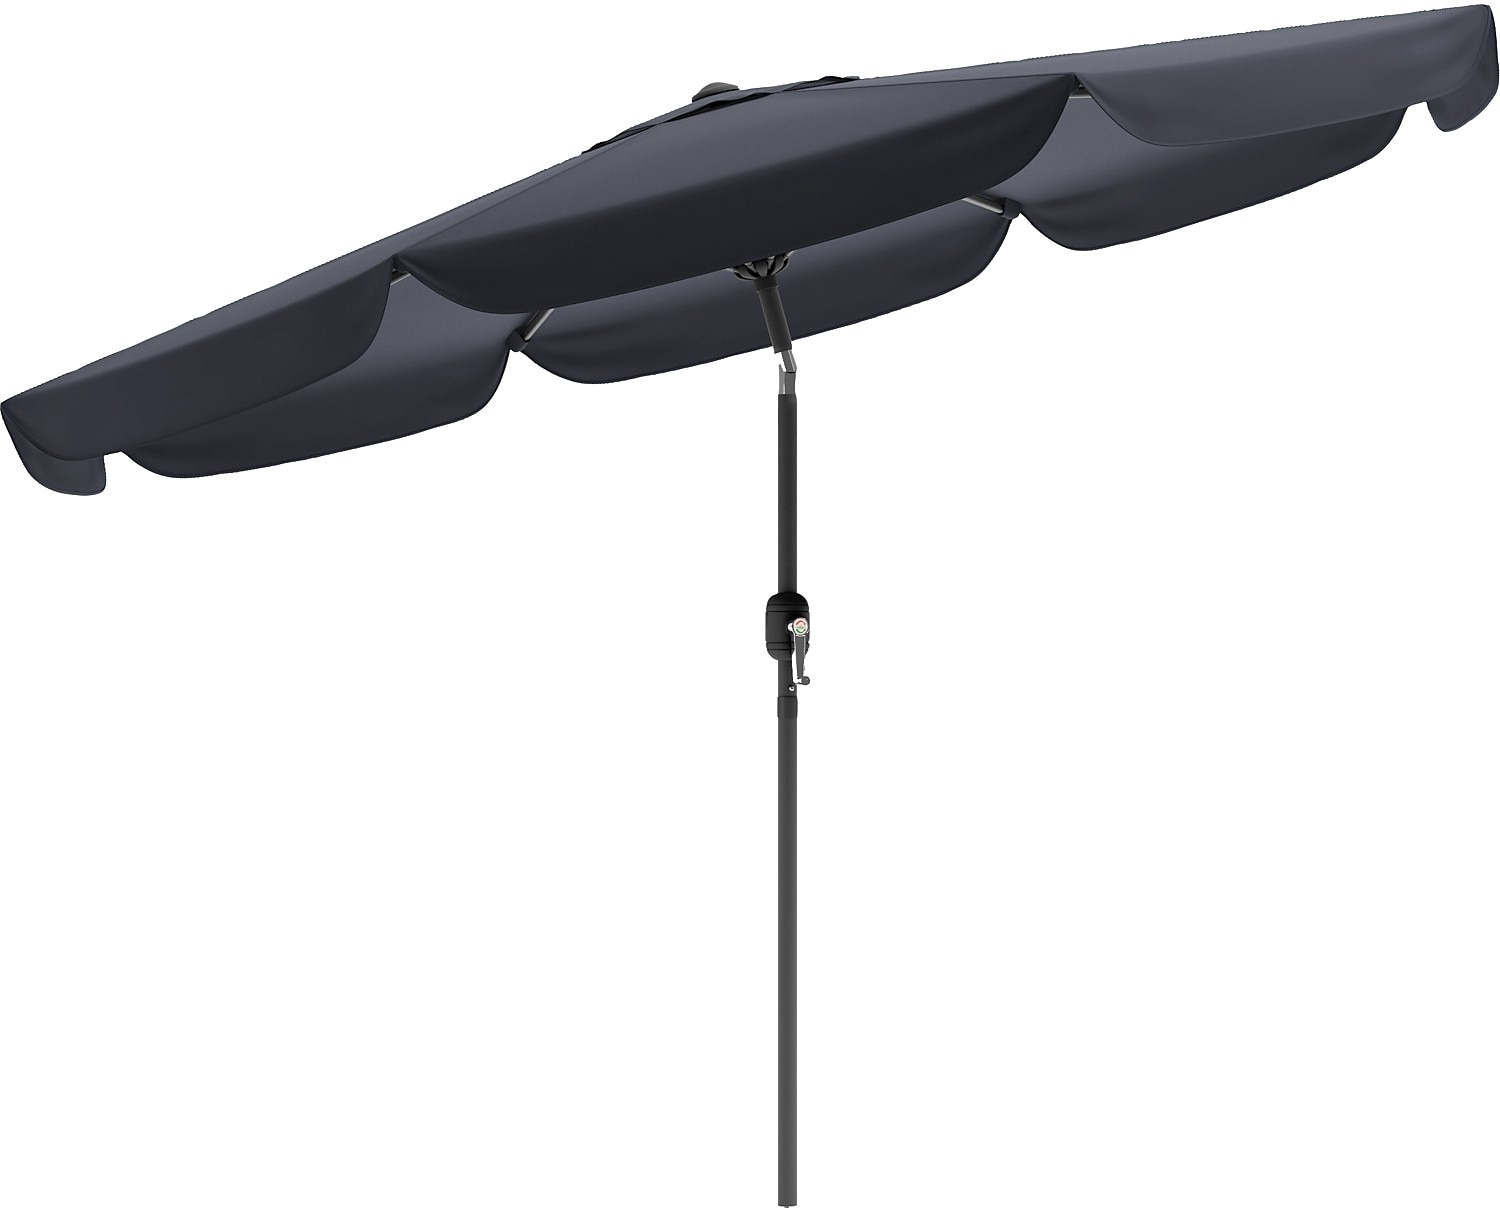 Tilting-Top Patio Umbrella - Black